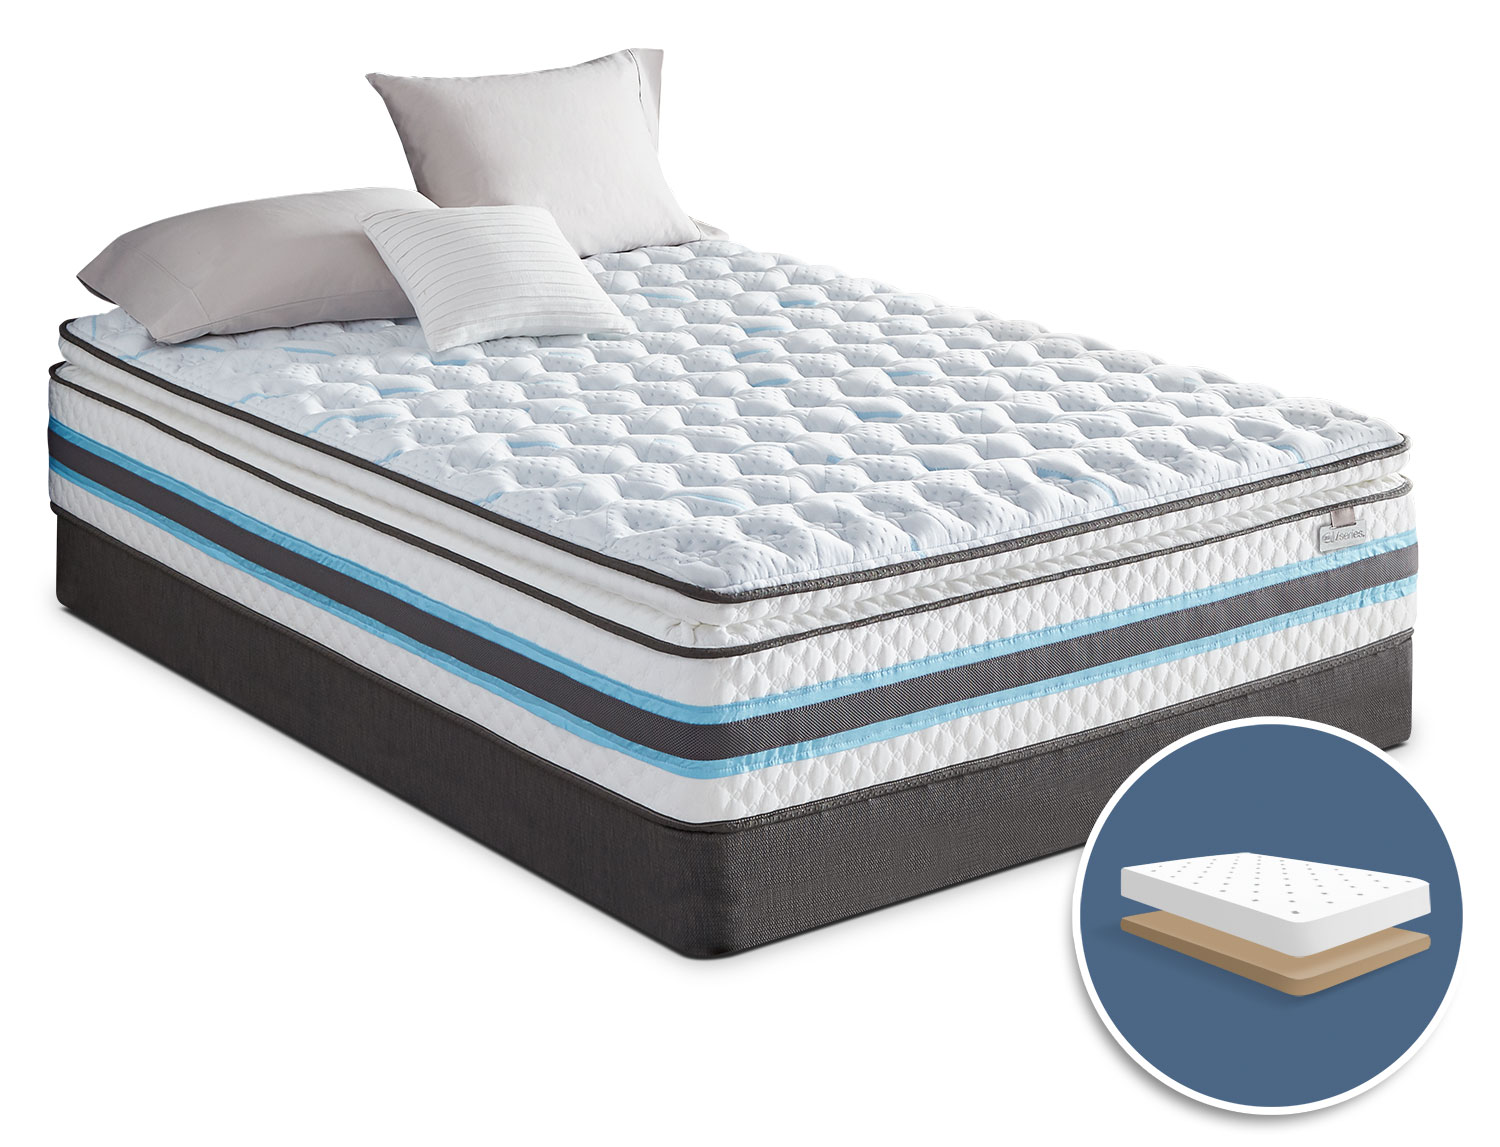 Serta iSeries® Breathtaking Pillow-Top Firm Low-Profile King Mattress Set